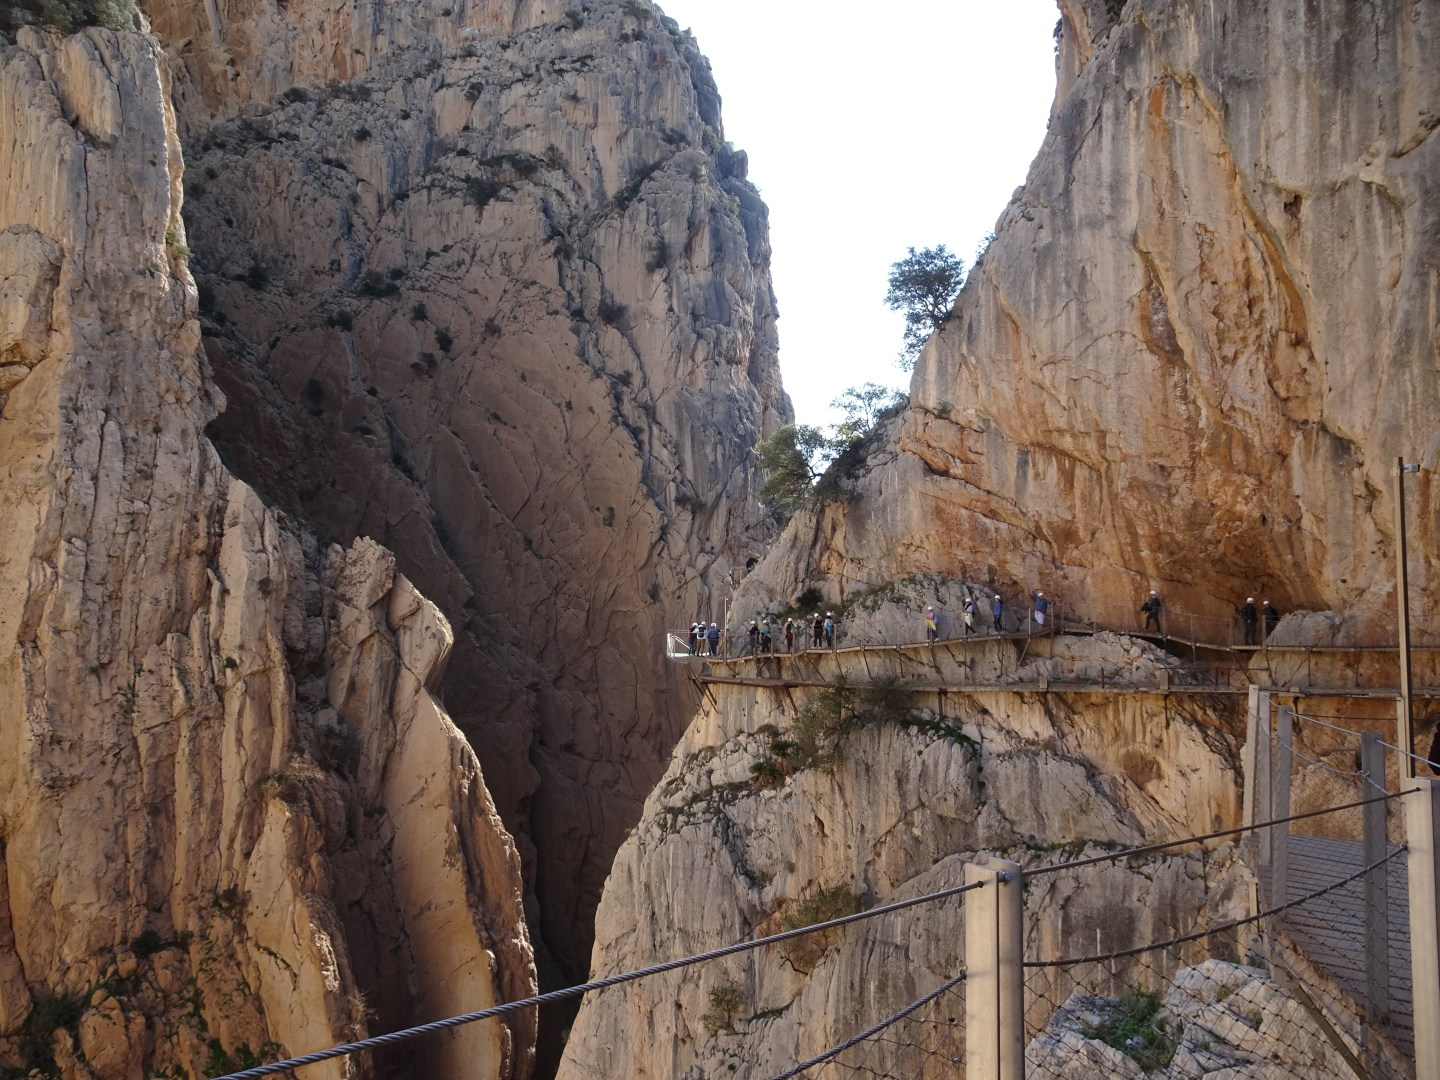 Walking the Caminito del Rey